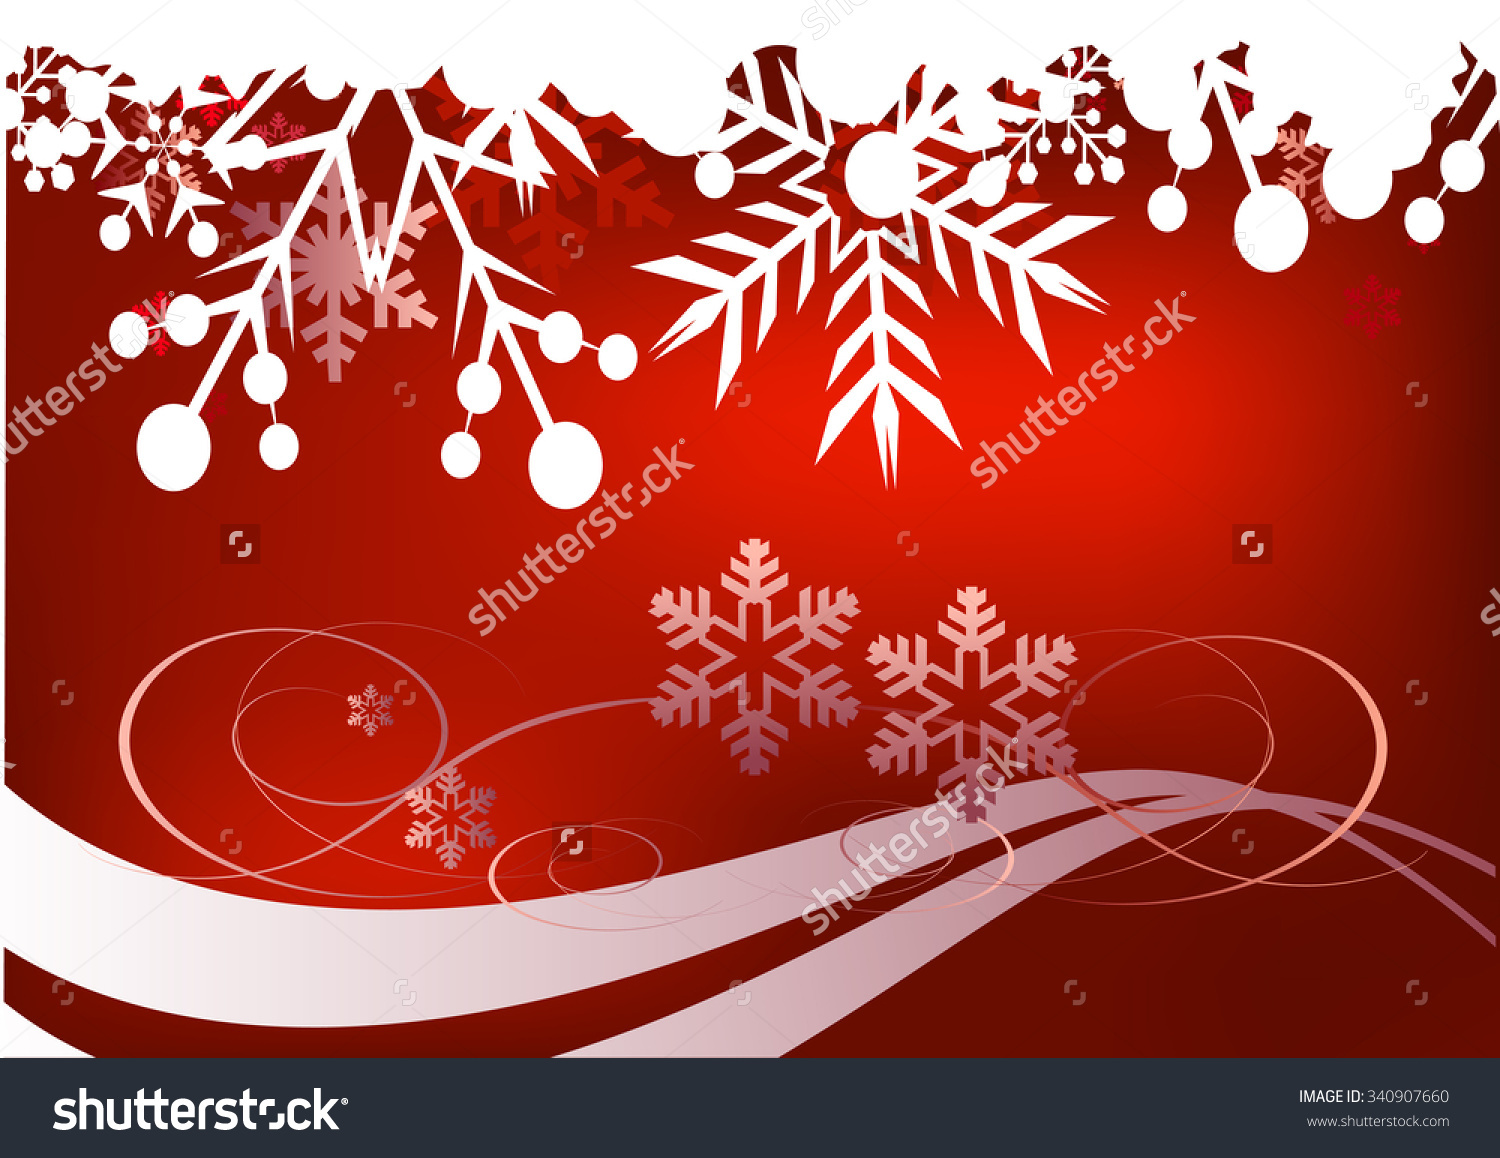 Christmas Card Christmas Card Vector Christmas Card Design Christmas Card Frame Christmas Card Colorful Christmas Card Border Christmas Day Red Christmas Christmas Decorations Vector